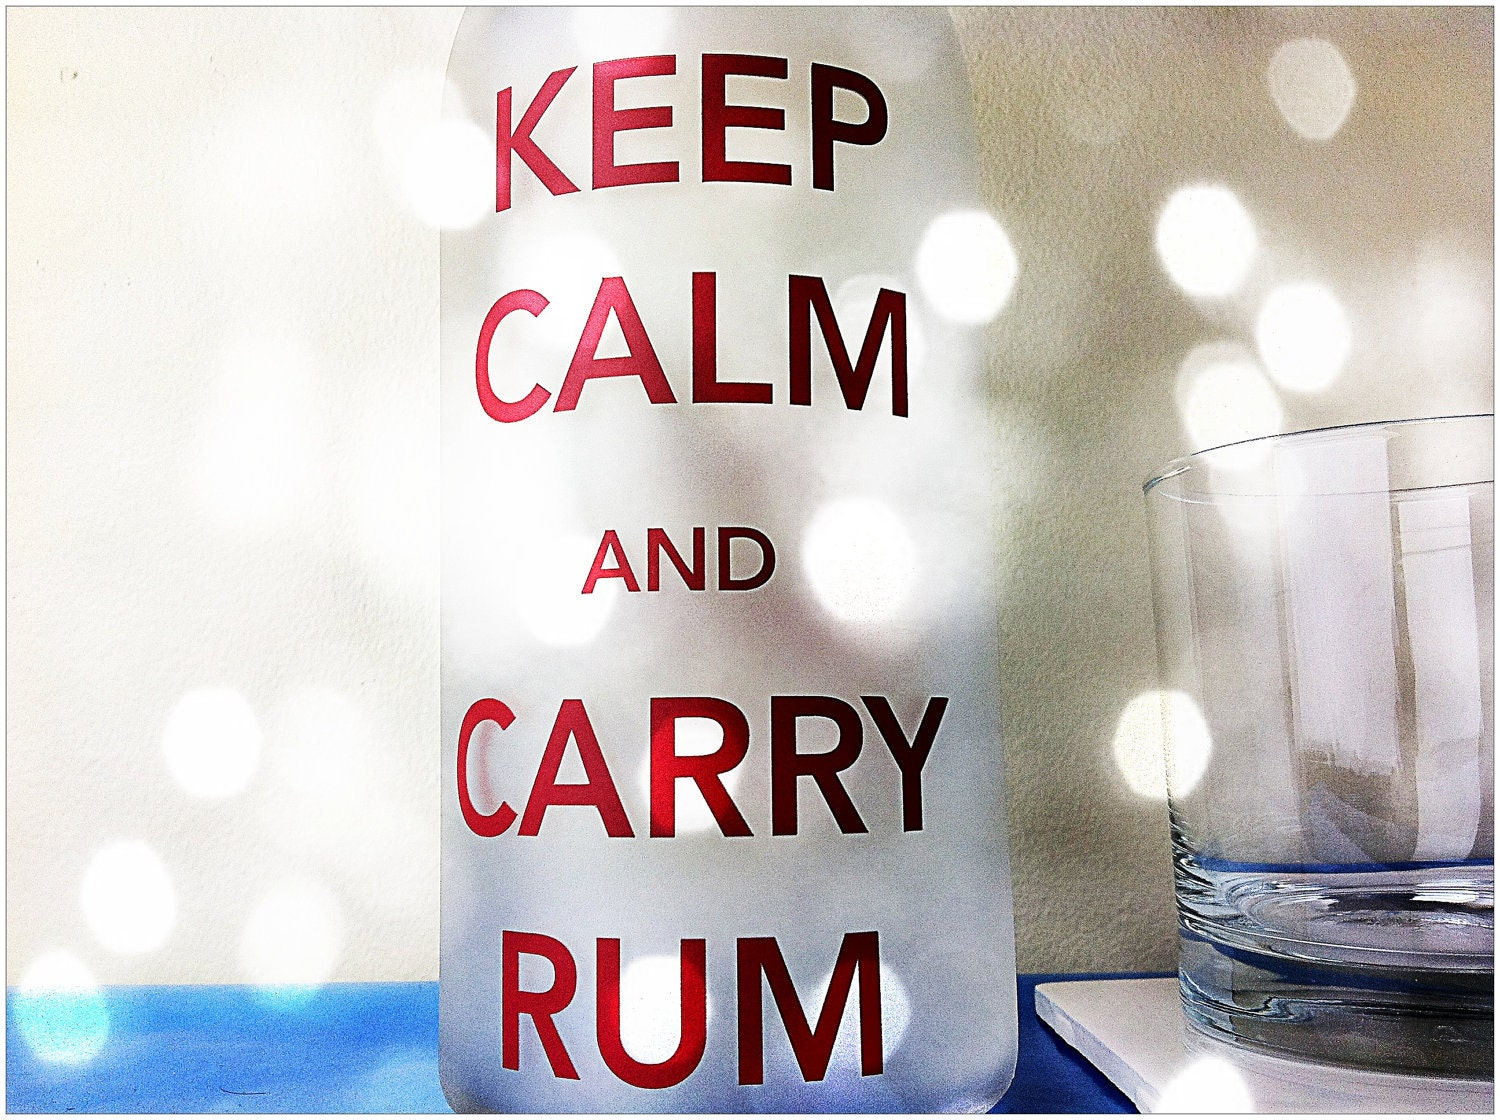 Cocktail Bottle: Keep Calm and Carry Rum